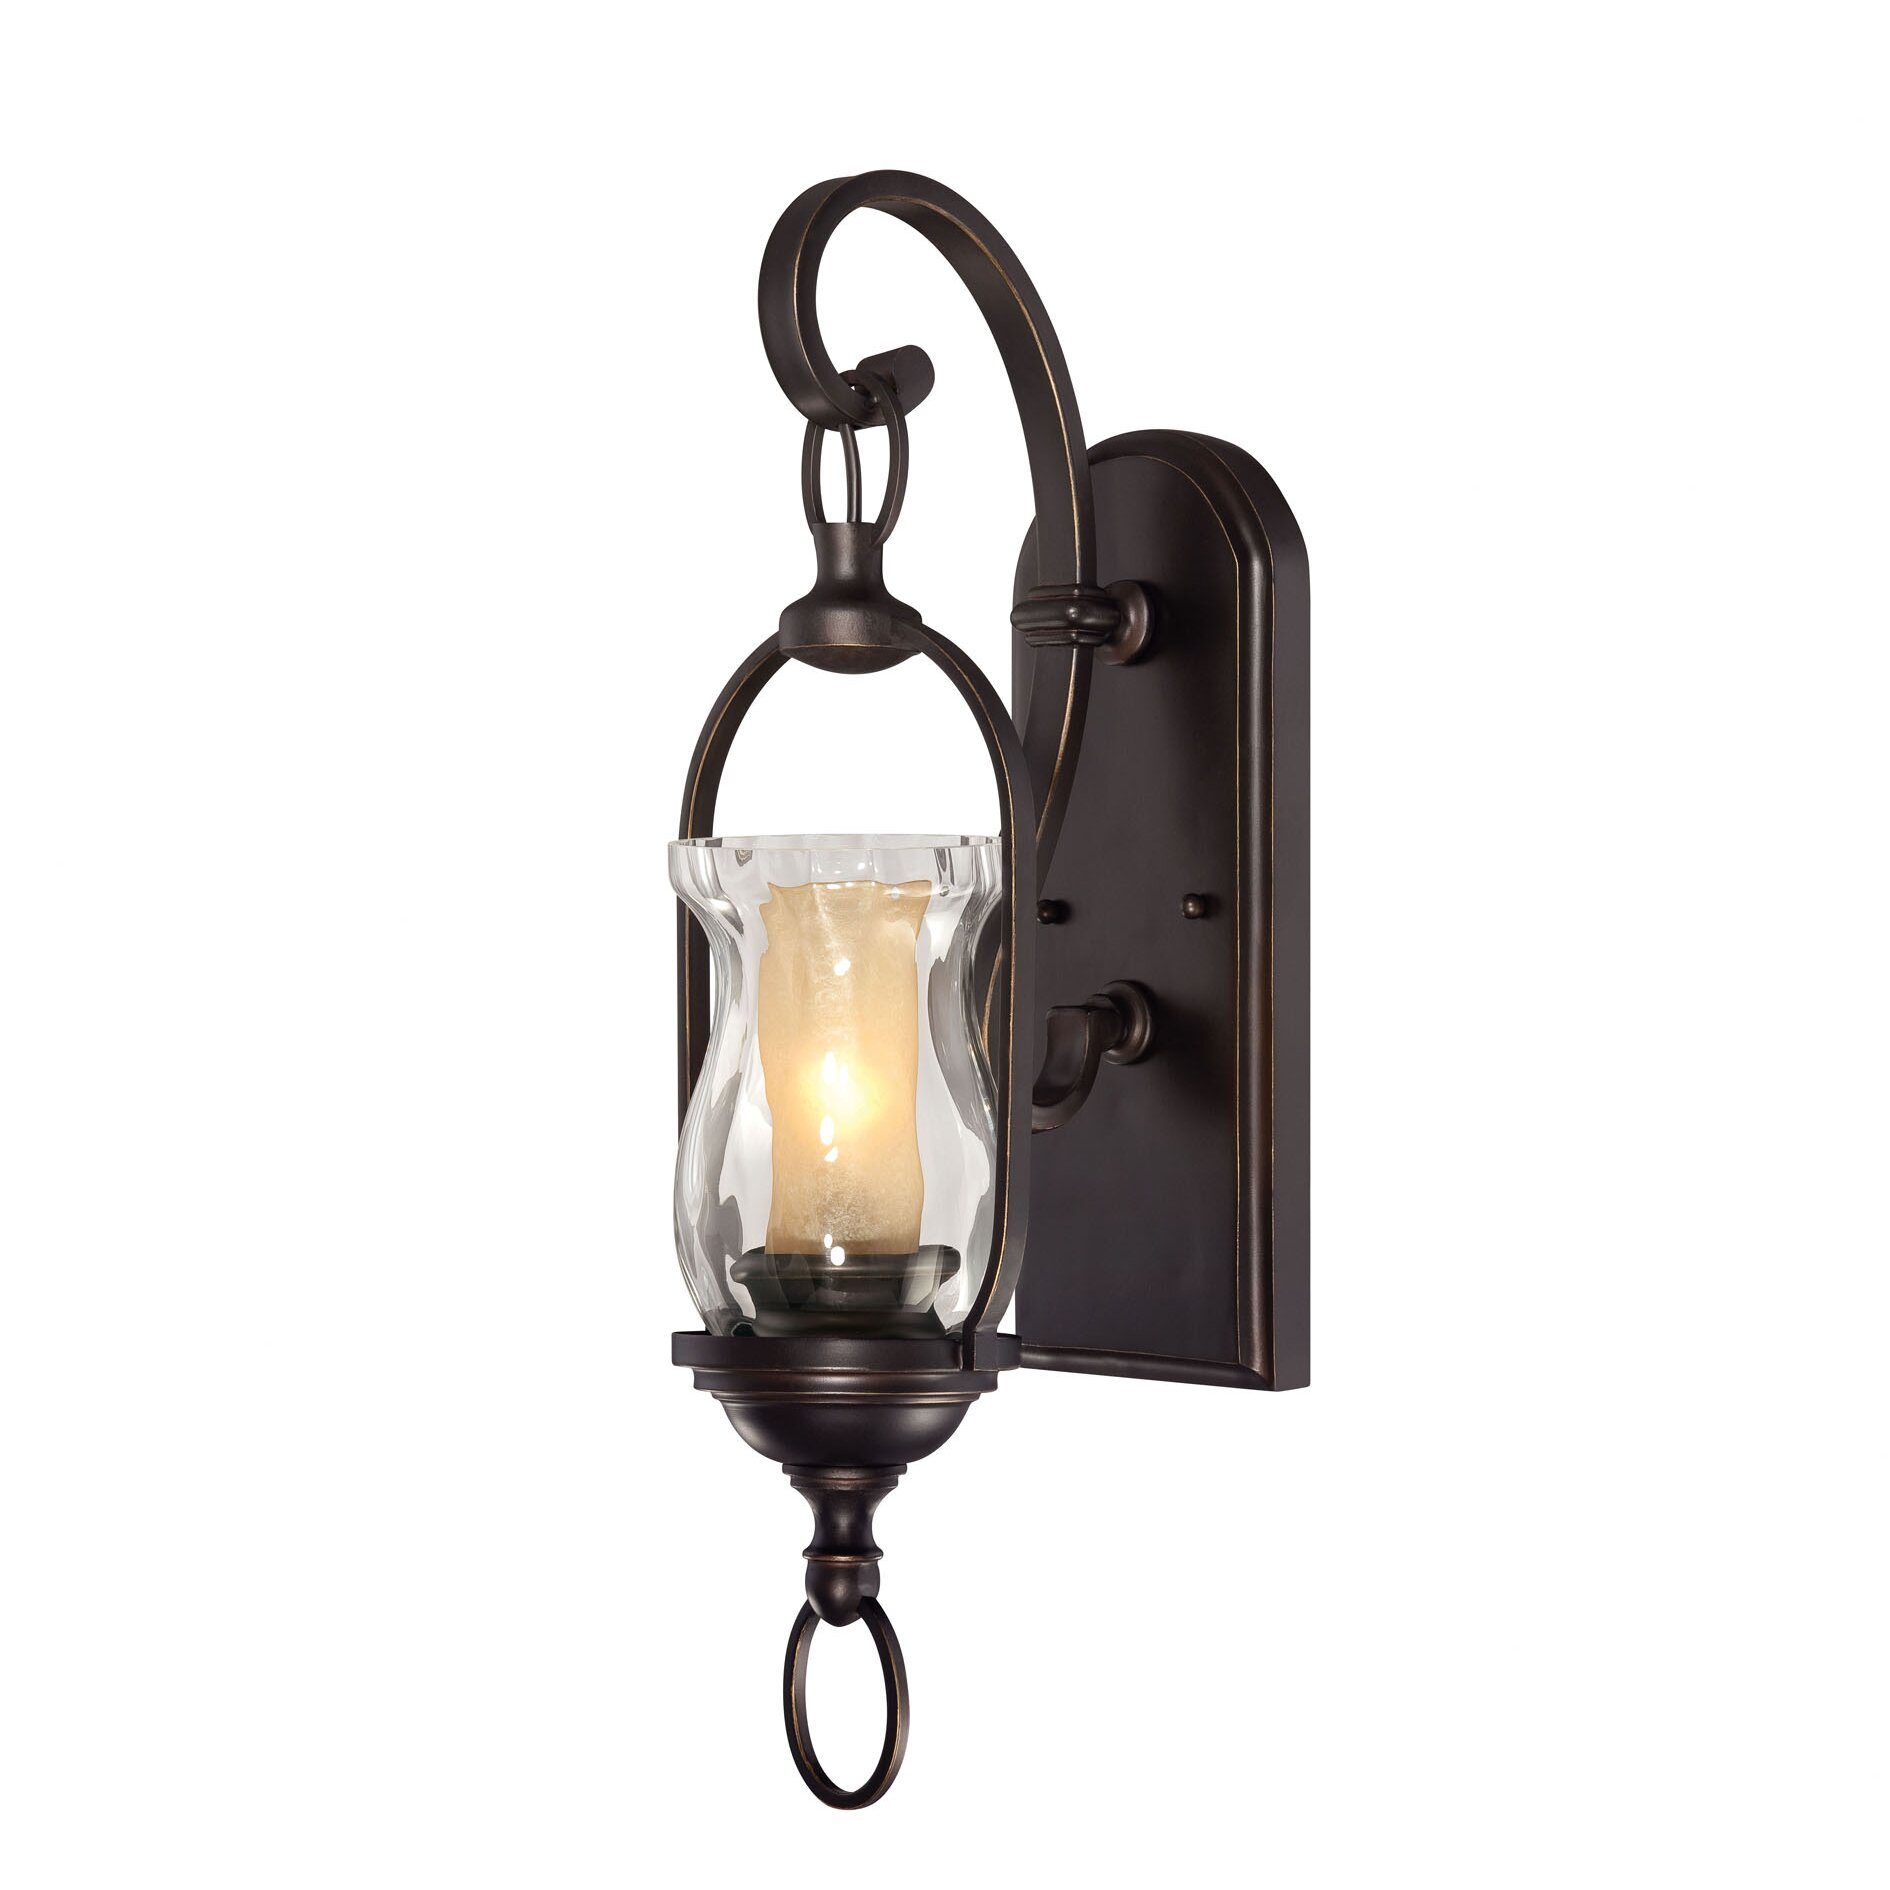 Savoy House Shadwell 1 Light Wall Sconce & Reviews